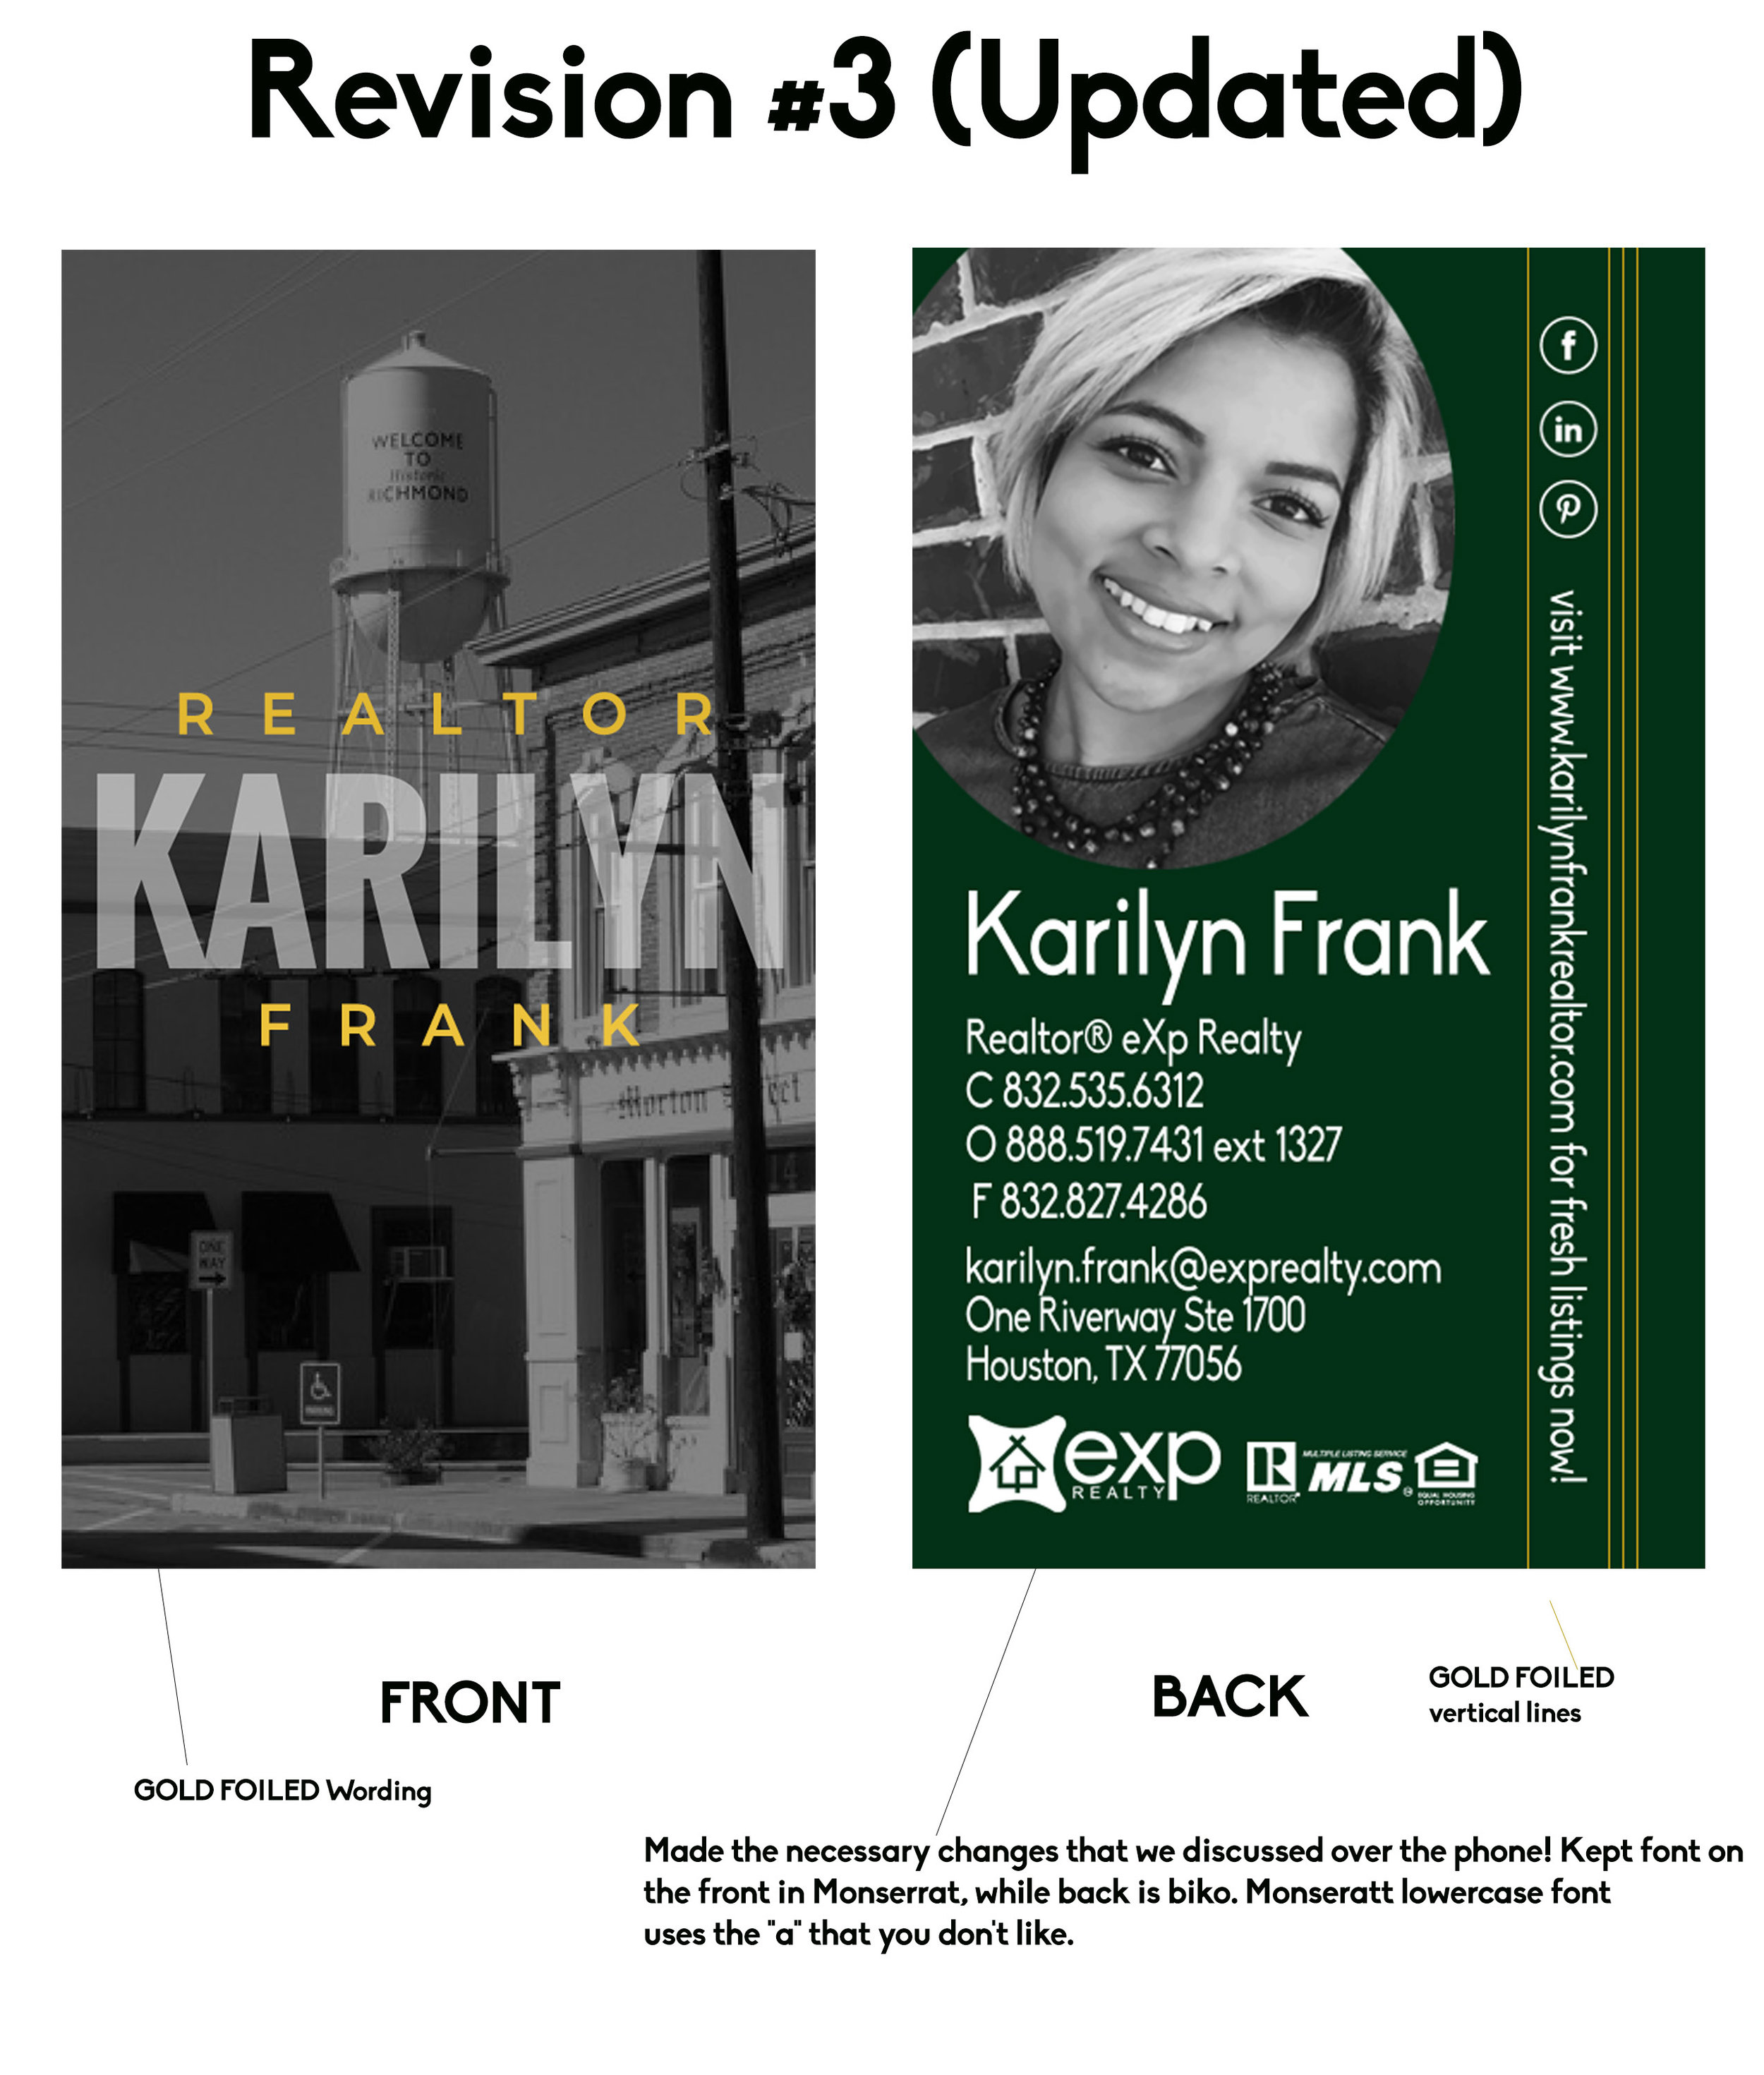 KarilynFrankRevised3Update.jpg